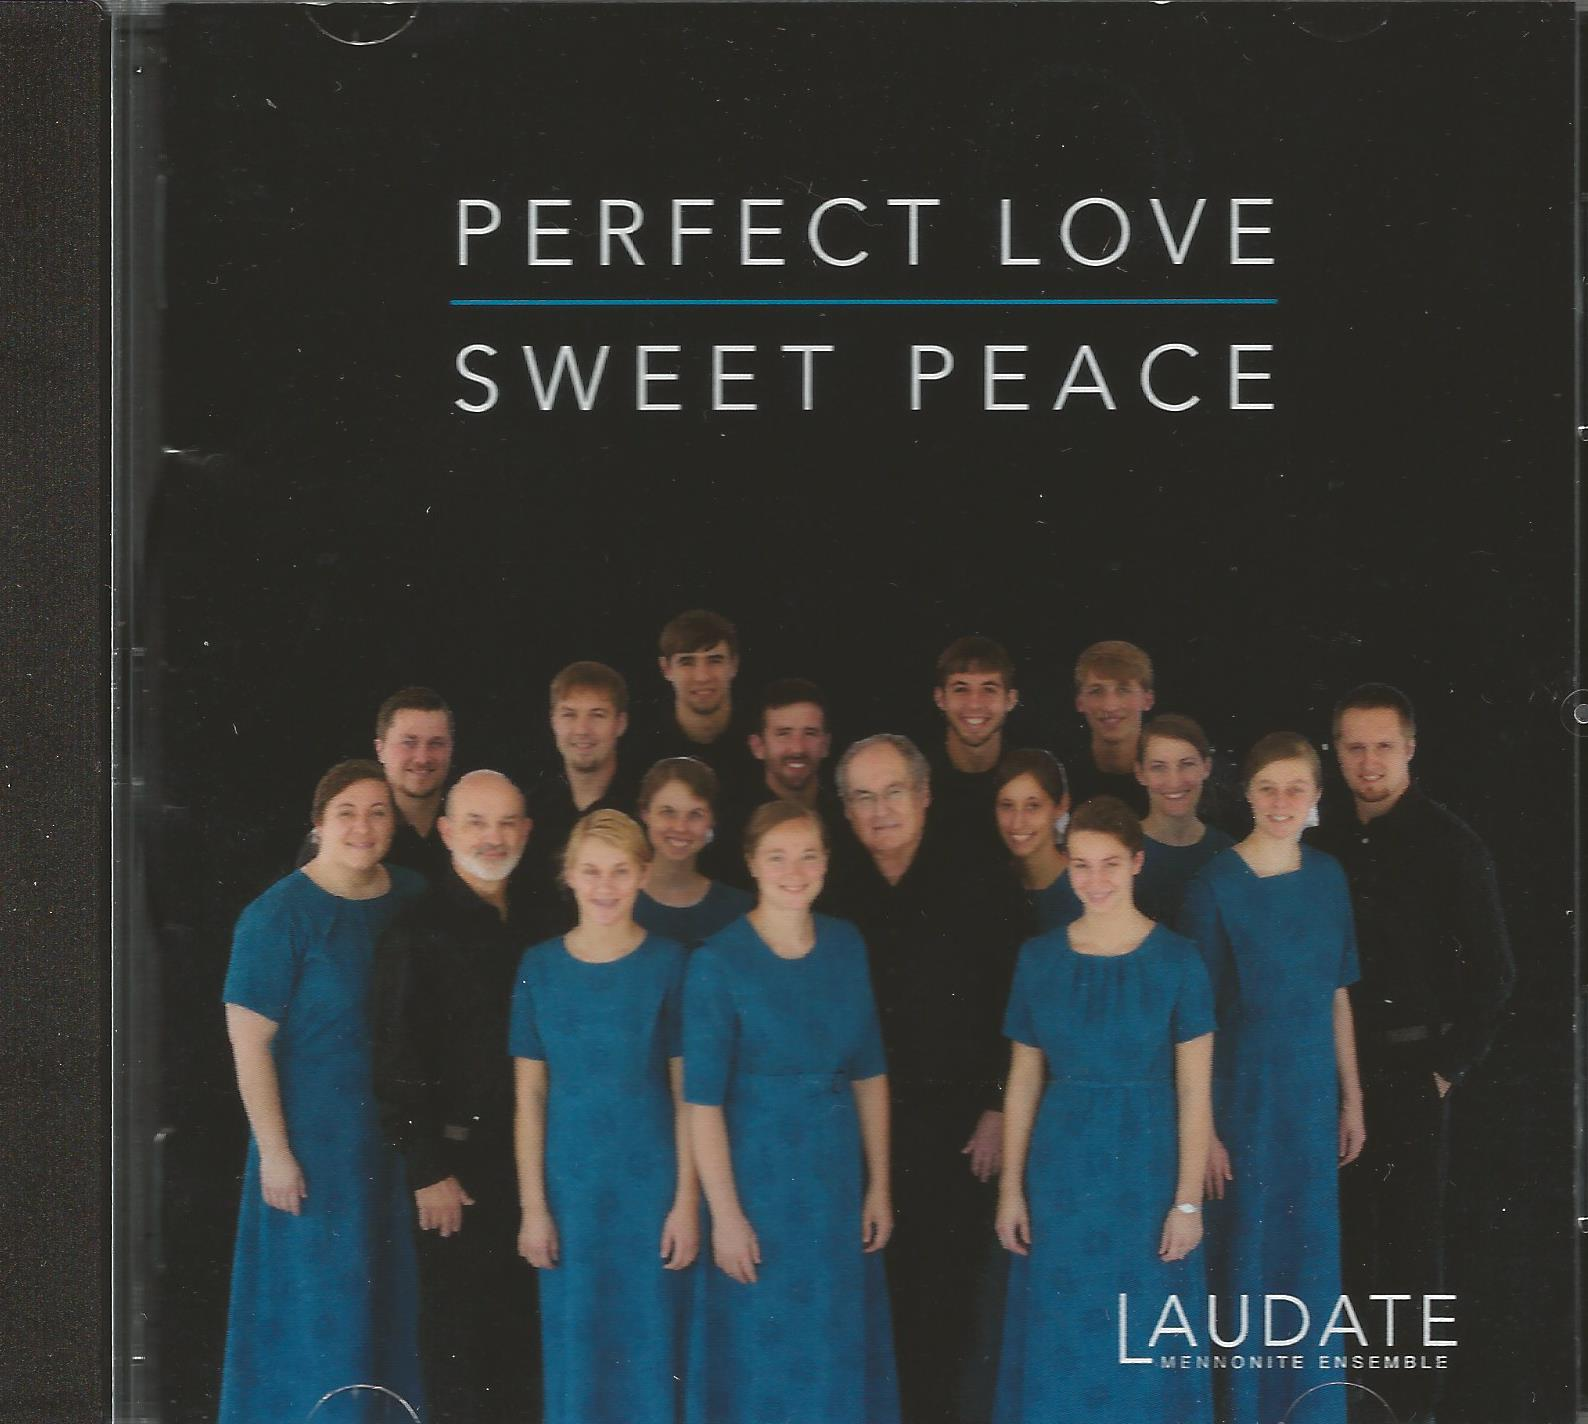 PERFECT LOVE | SWEET PEACE Laudate Mennonite Ensemble